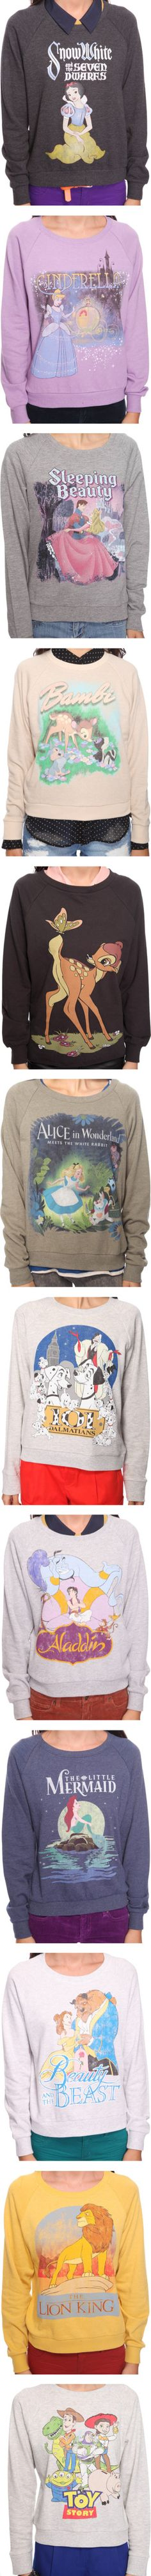 """Forever 21 Disney Sweatshirts"" 101 Dalmatians and The Little Mermaid! Disney Inspired Outfits, Disney Outfits, Disney Style, Disney Love, Disney Clothes, Disney Sweatshirts, Disney Sweaters, Hoodies, Forever 21 Disney"